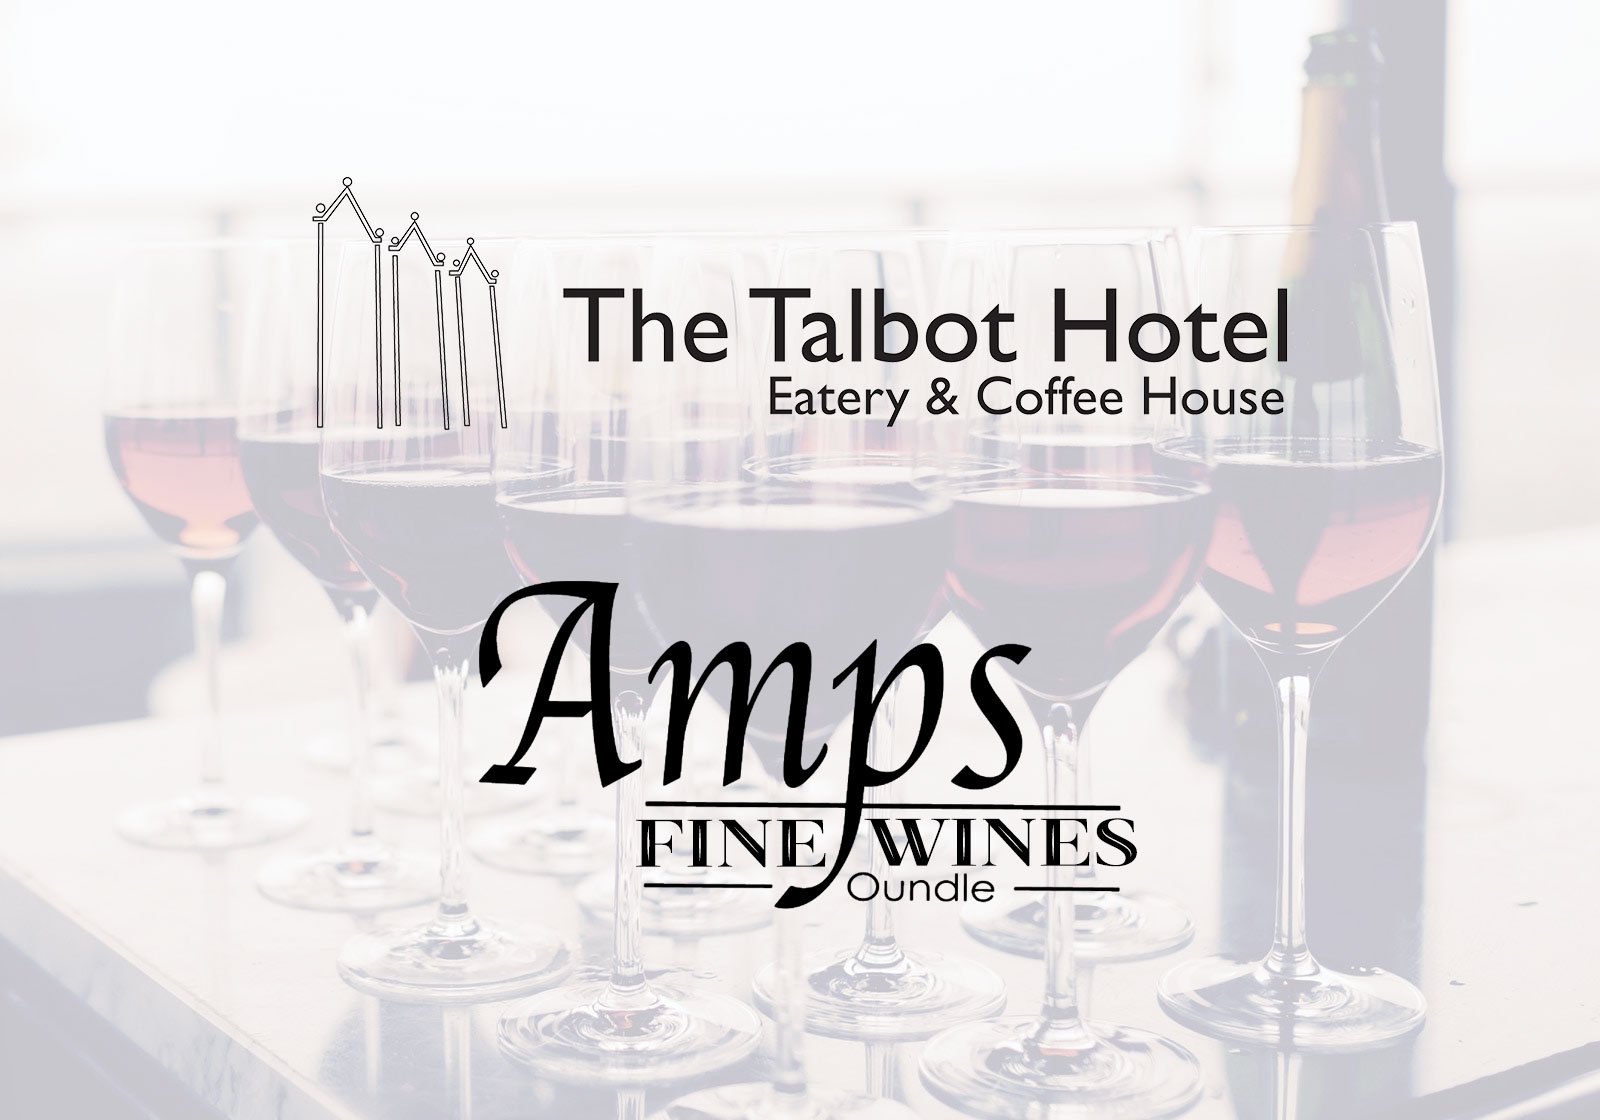 Amps Wine Tasting Offer